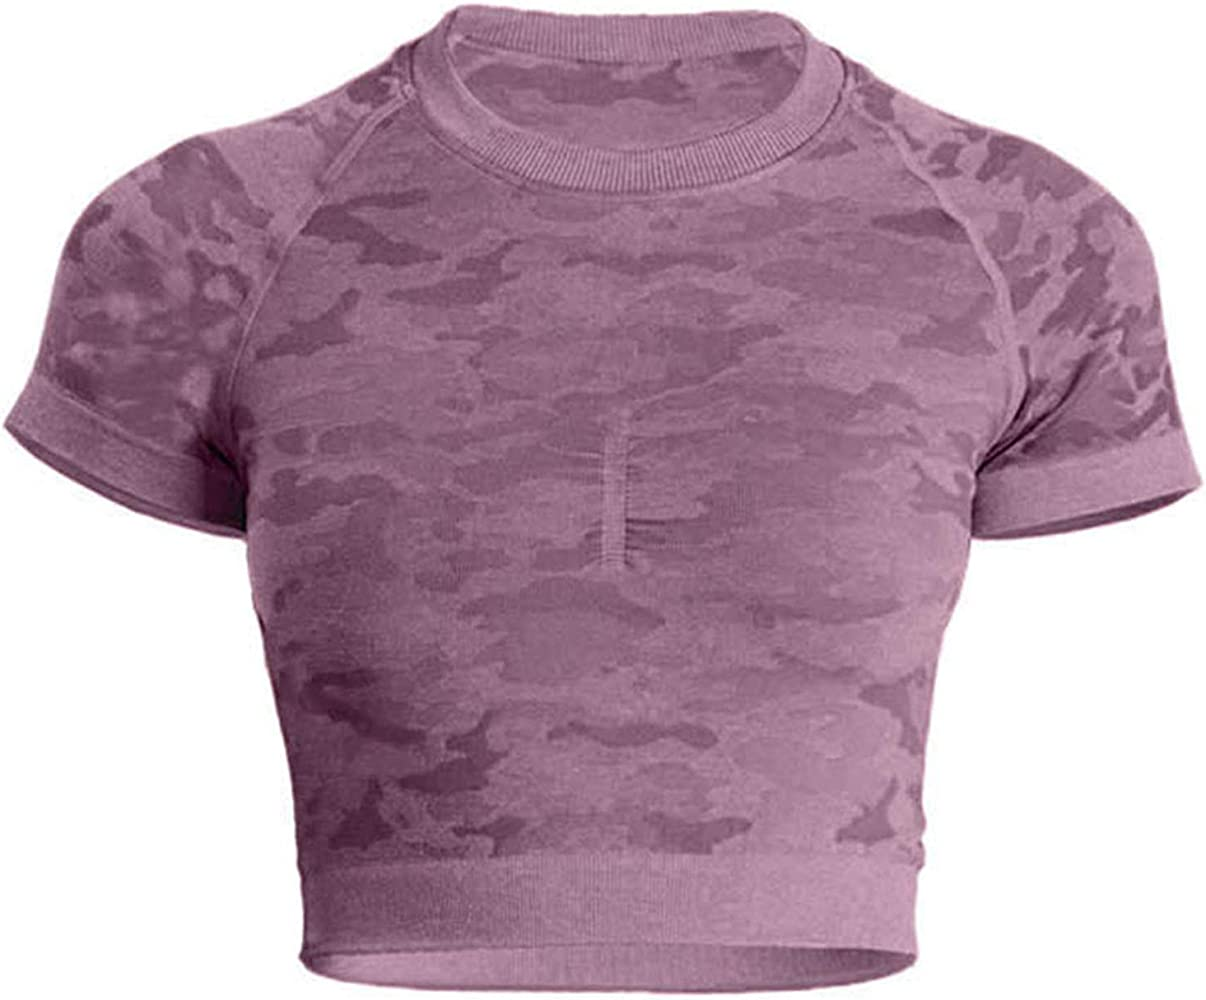 Ladies Purple Camo seamless gym leggings and long sleeved crop top Size S and M